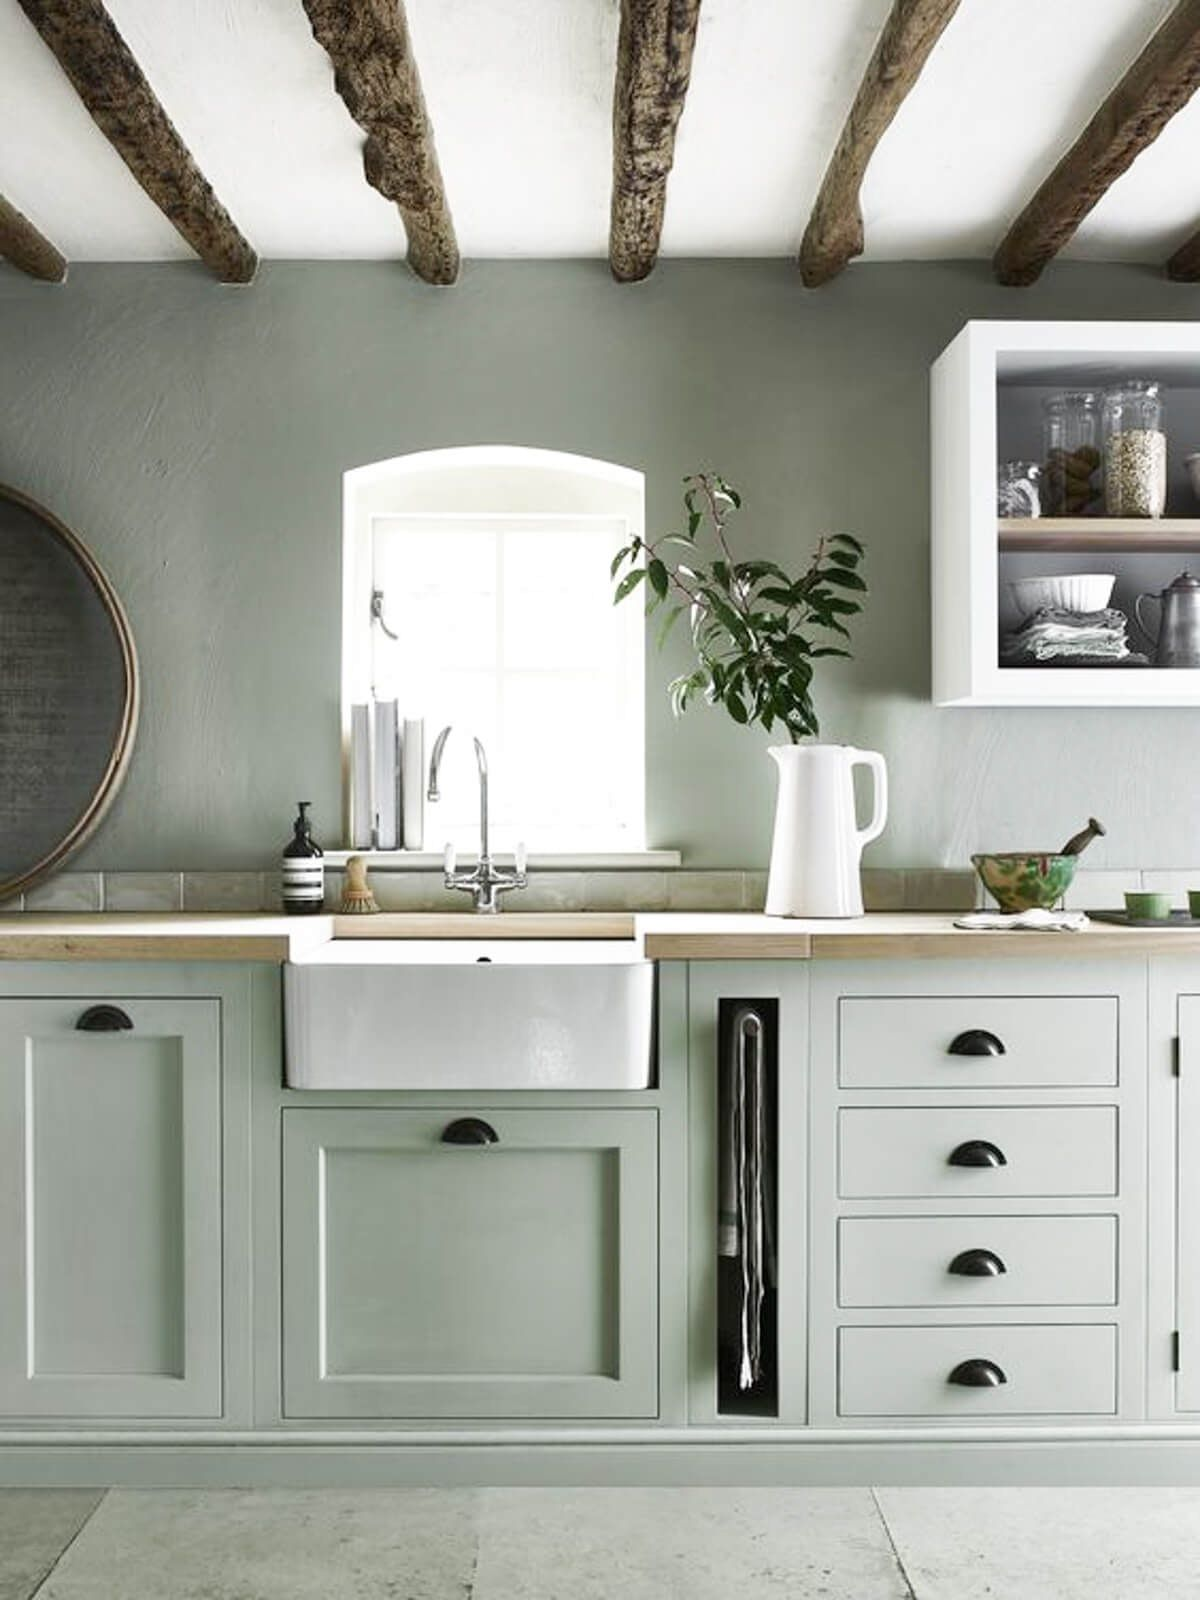 Weure calling it the top kitchen paint colors for kitchen